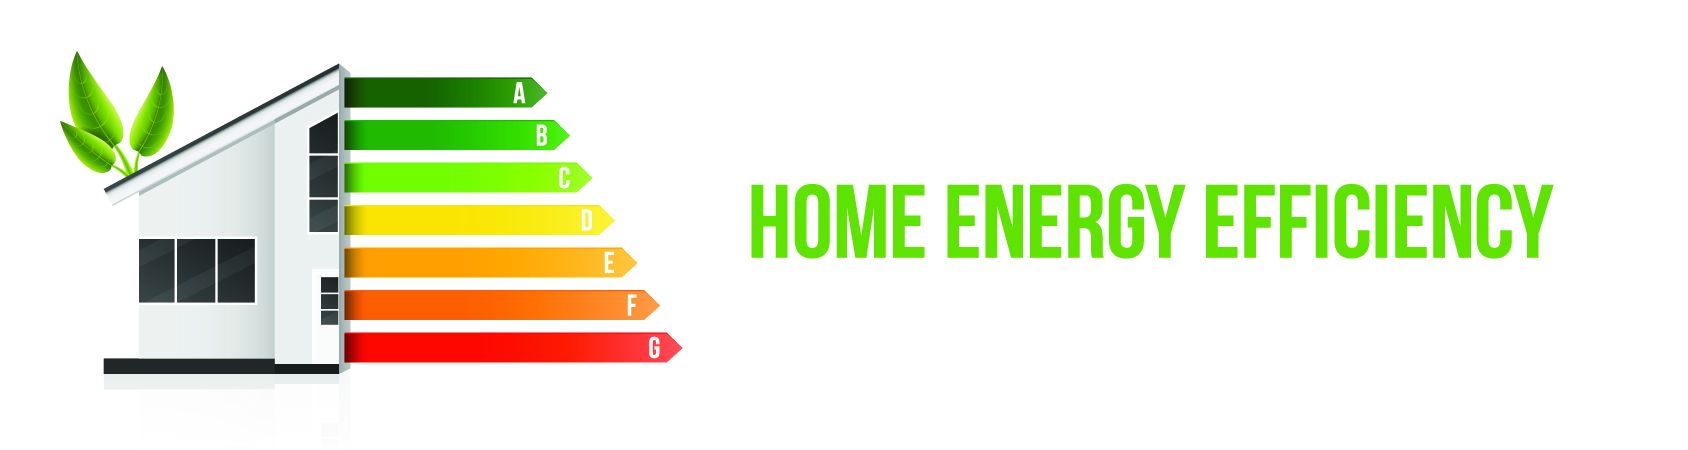 Home Energy Efficiency rating system